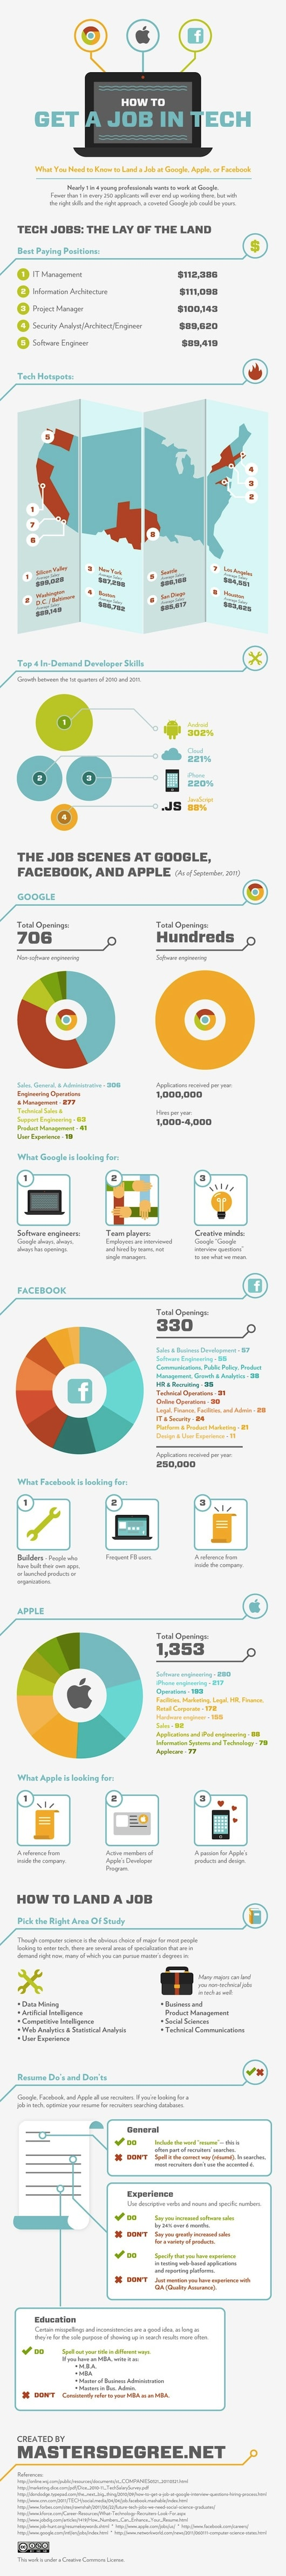 how to get a job at google facebook or apple infographic